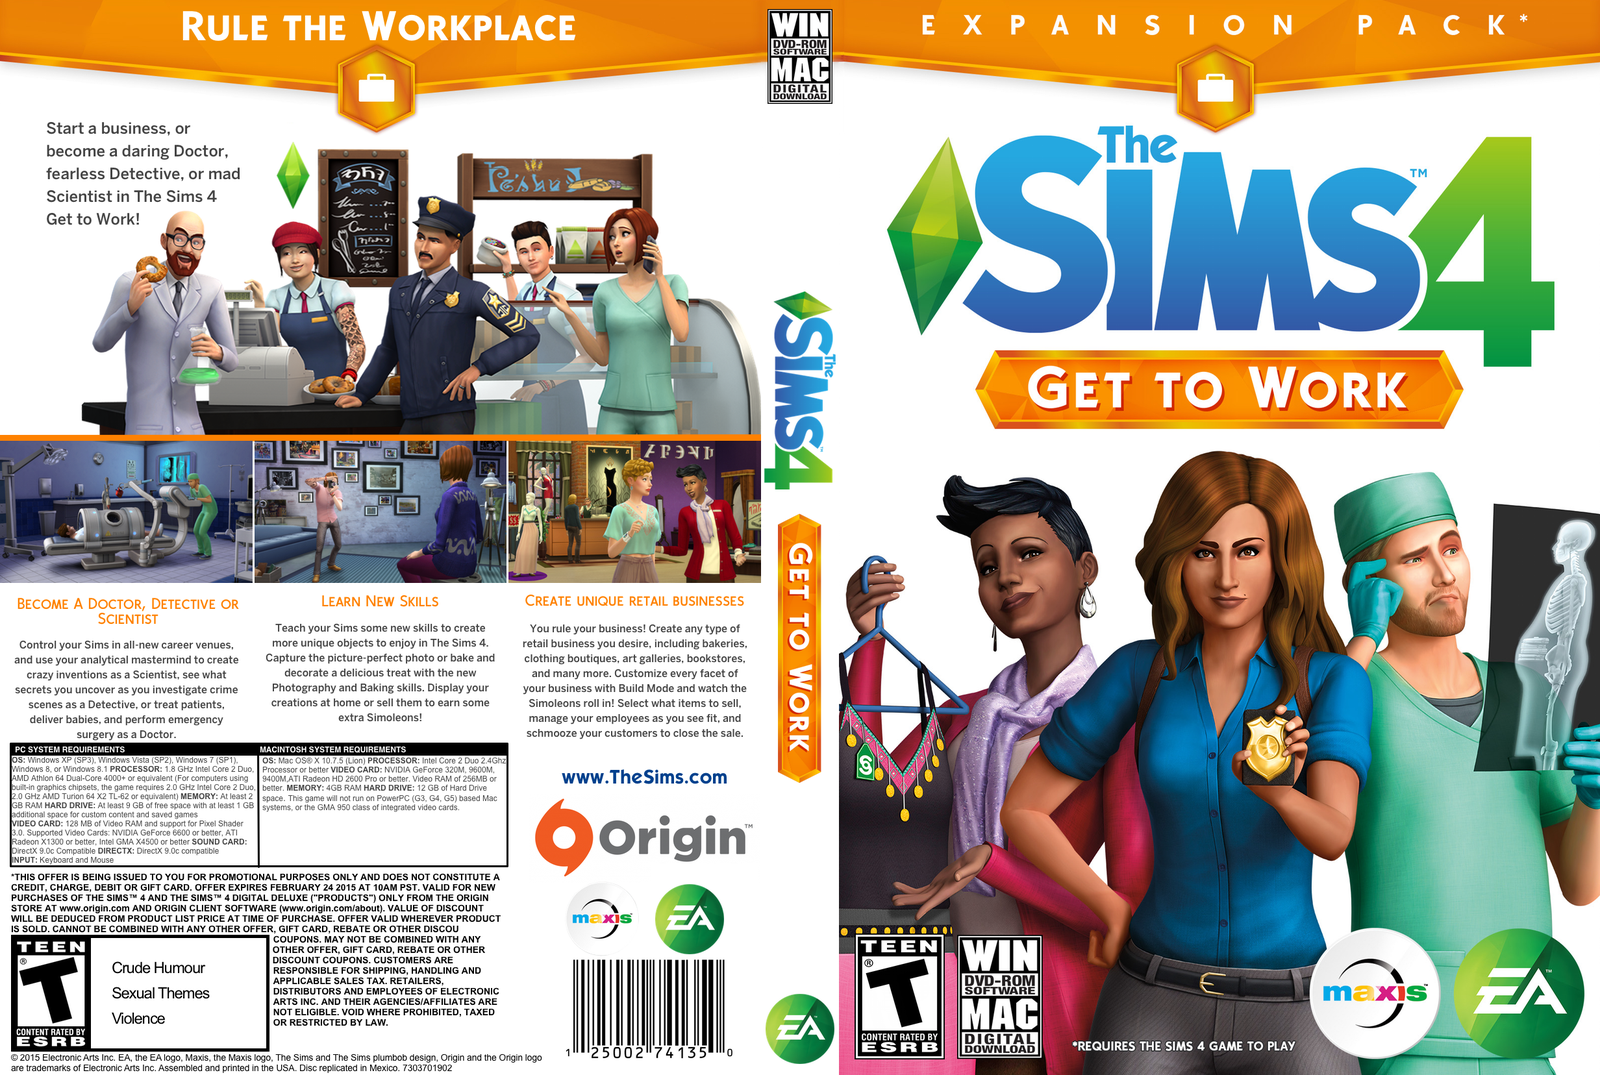 the sims 4 get to work ((تکی2000تومان عمده11000تومان(هر5عدد) ))